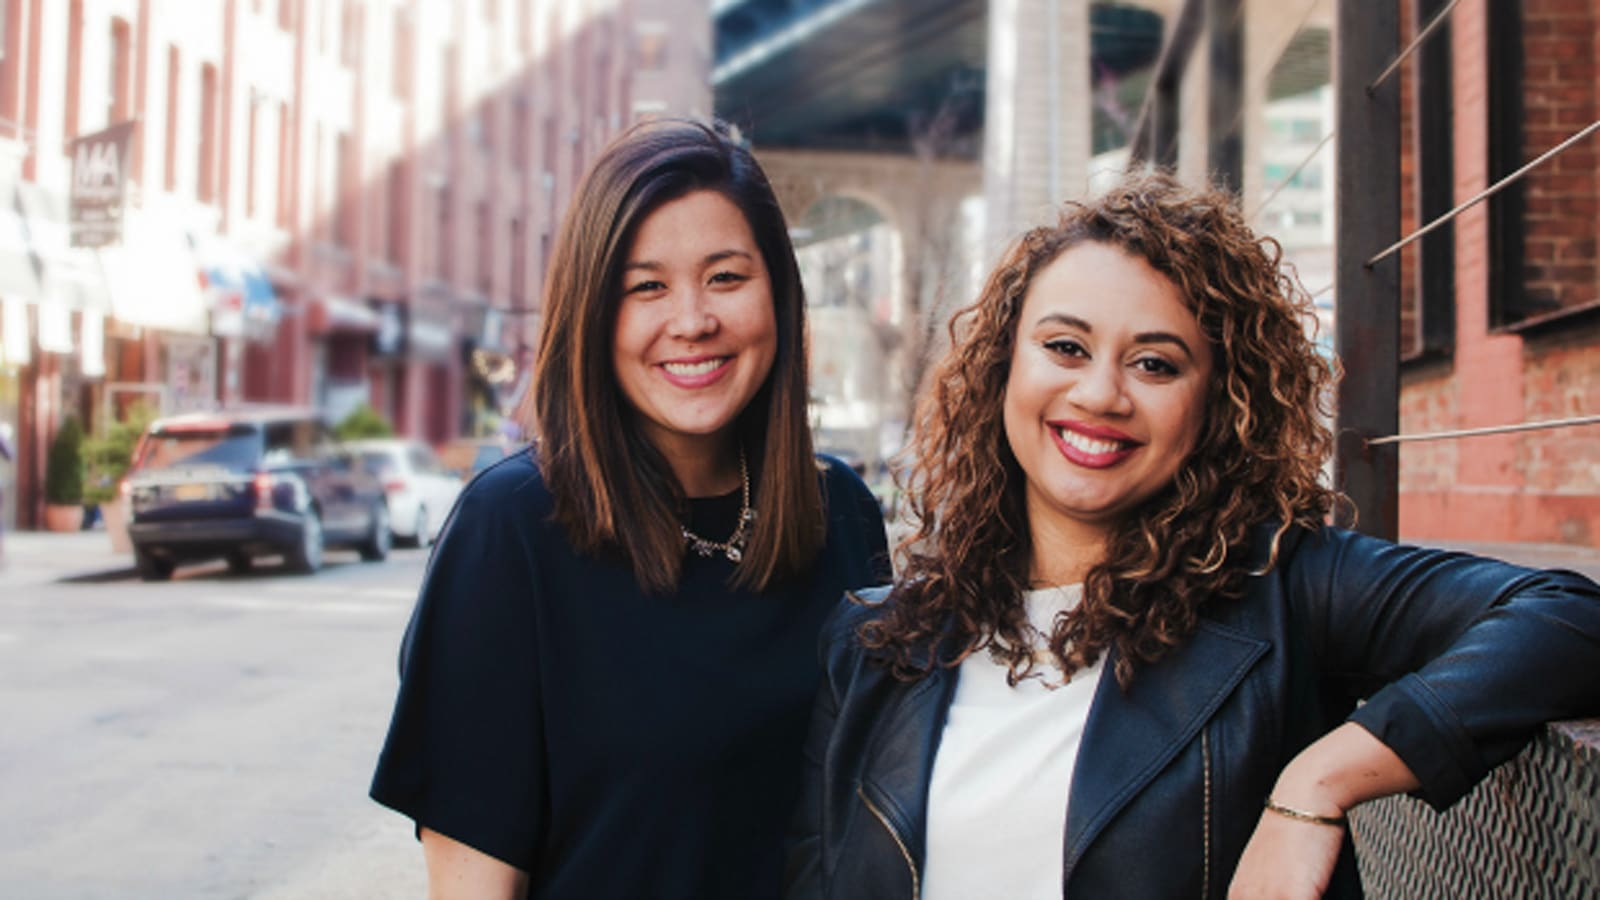 How To Be Your Best Self: Meet The Women Behind The App That Boosts Happiness